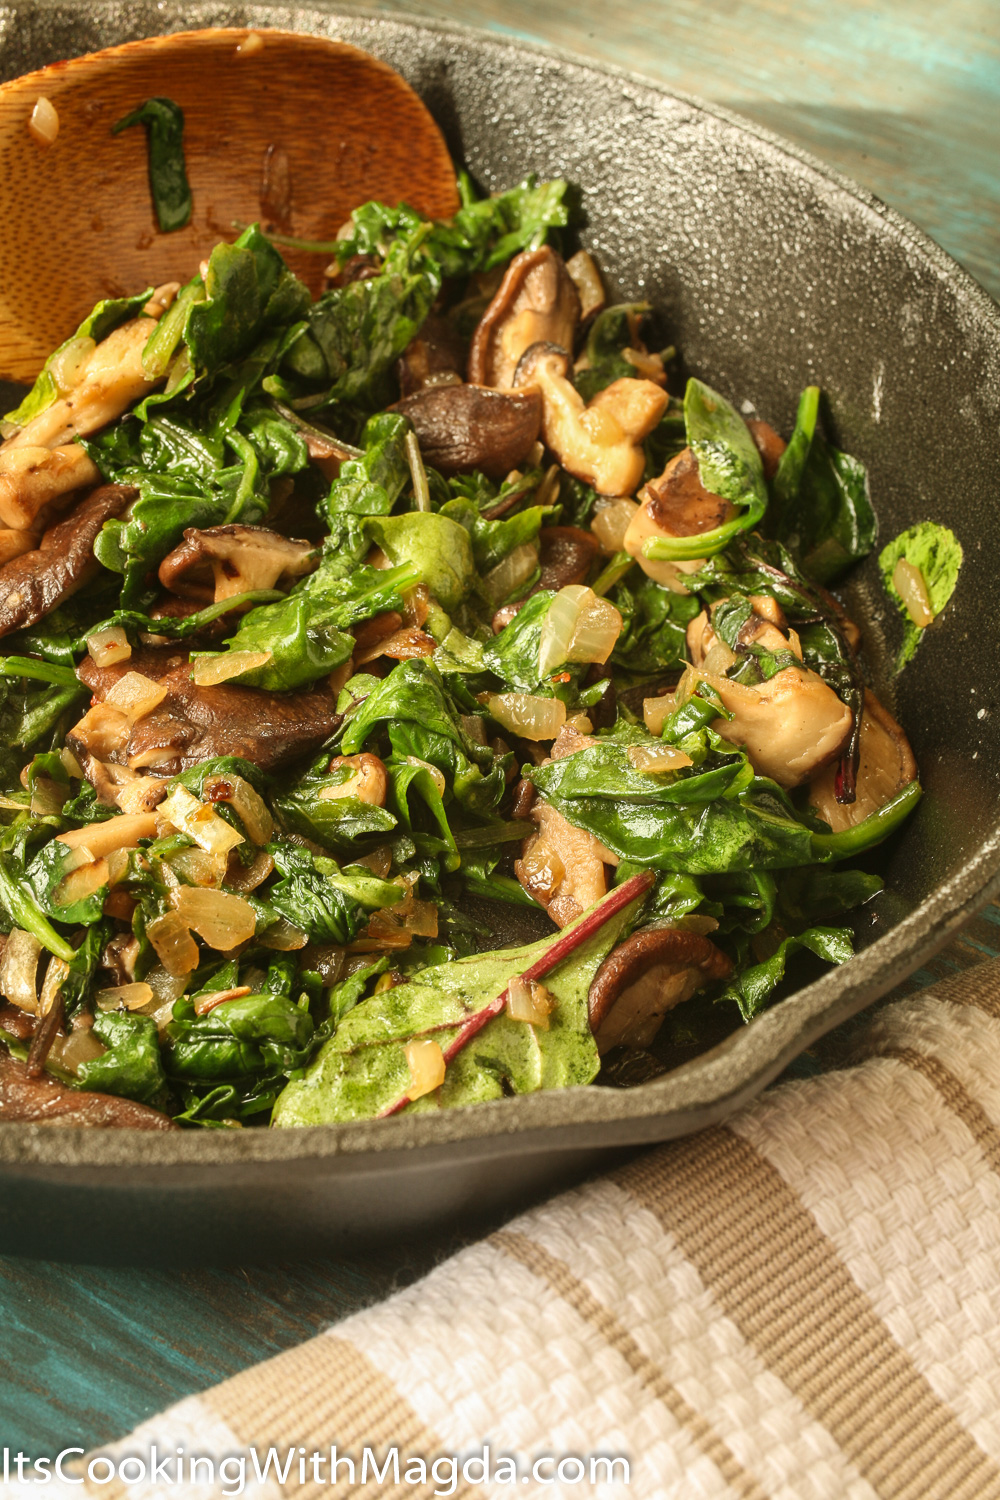 Eggs With Sauteed Mushrooms And Greens | It's Cooking with Magda